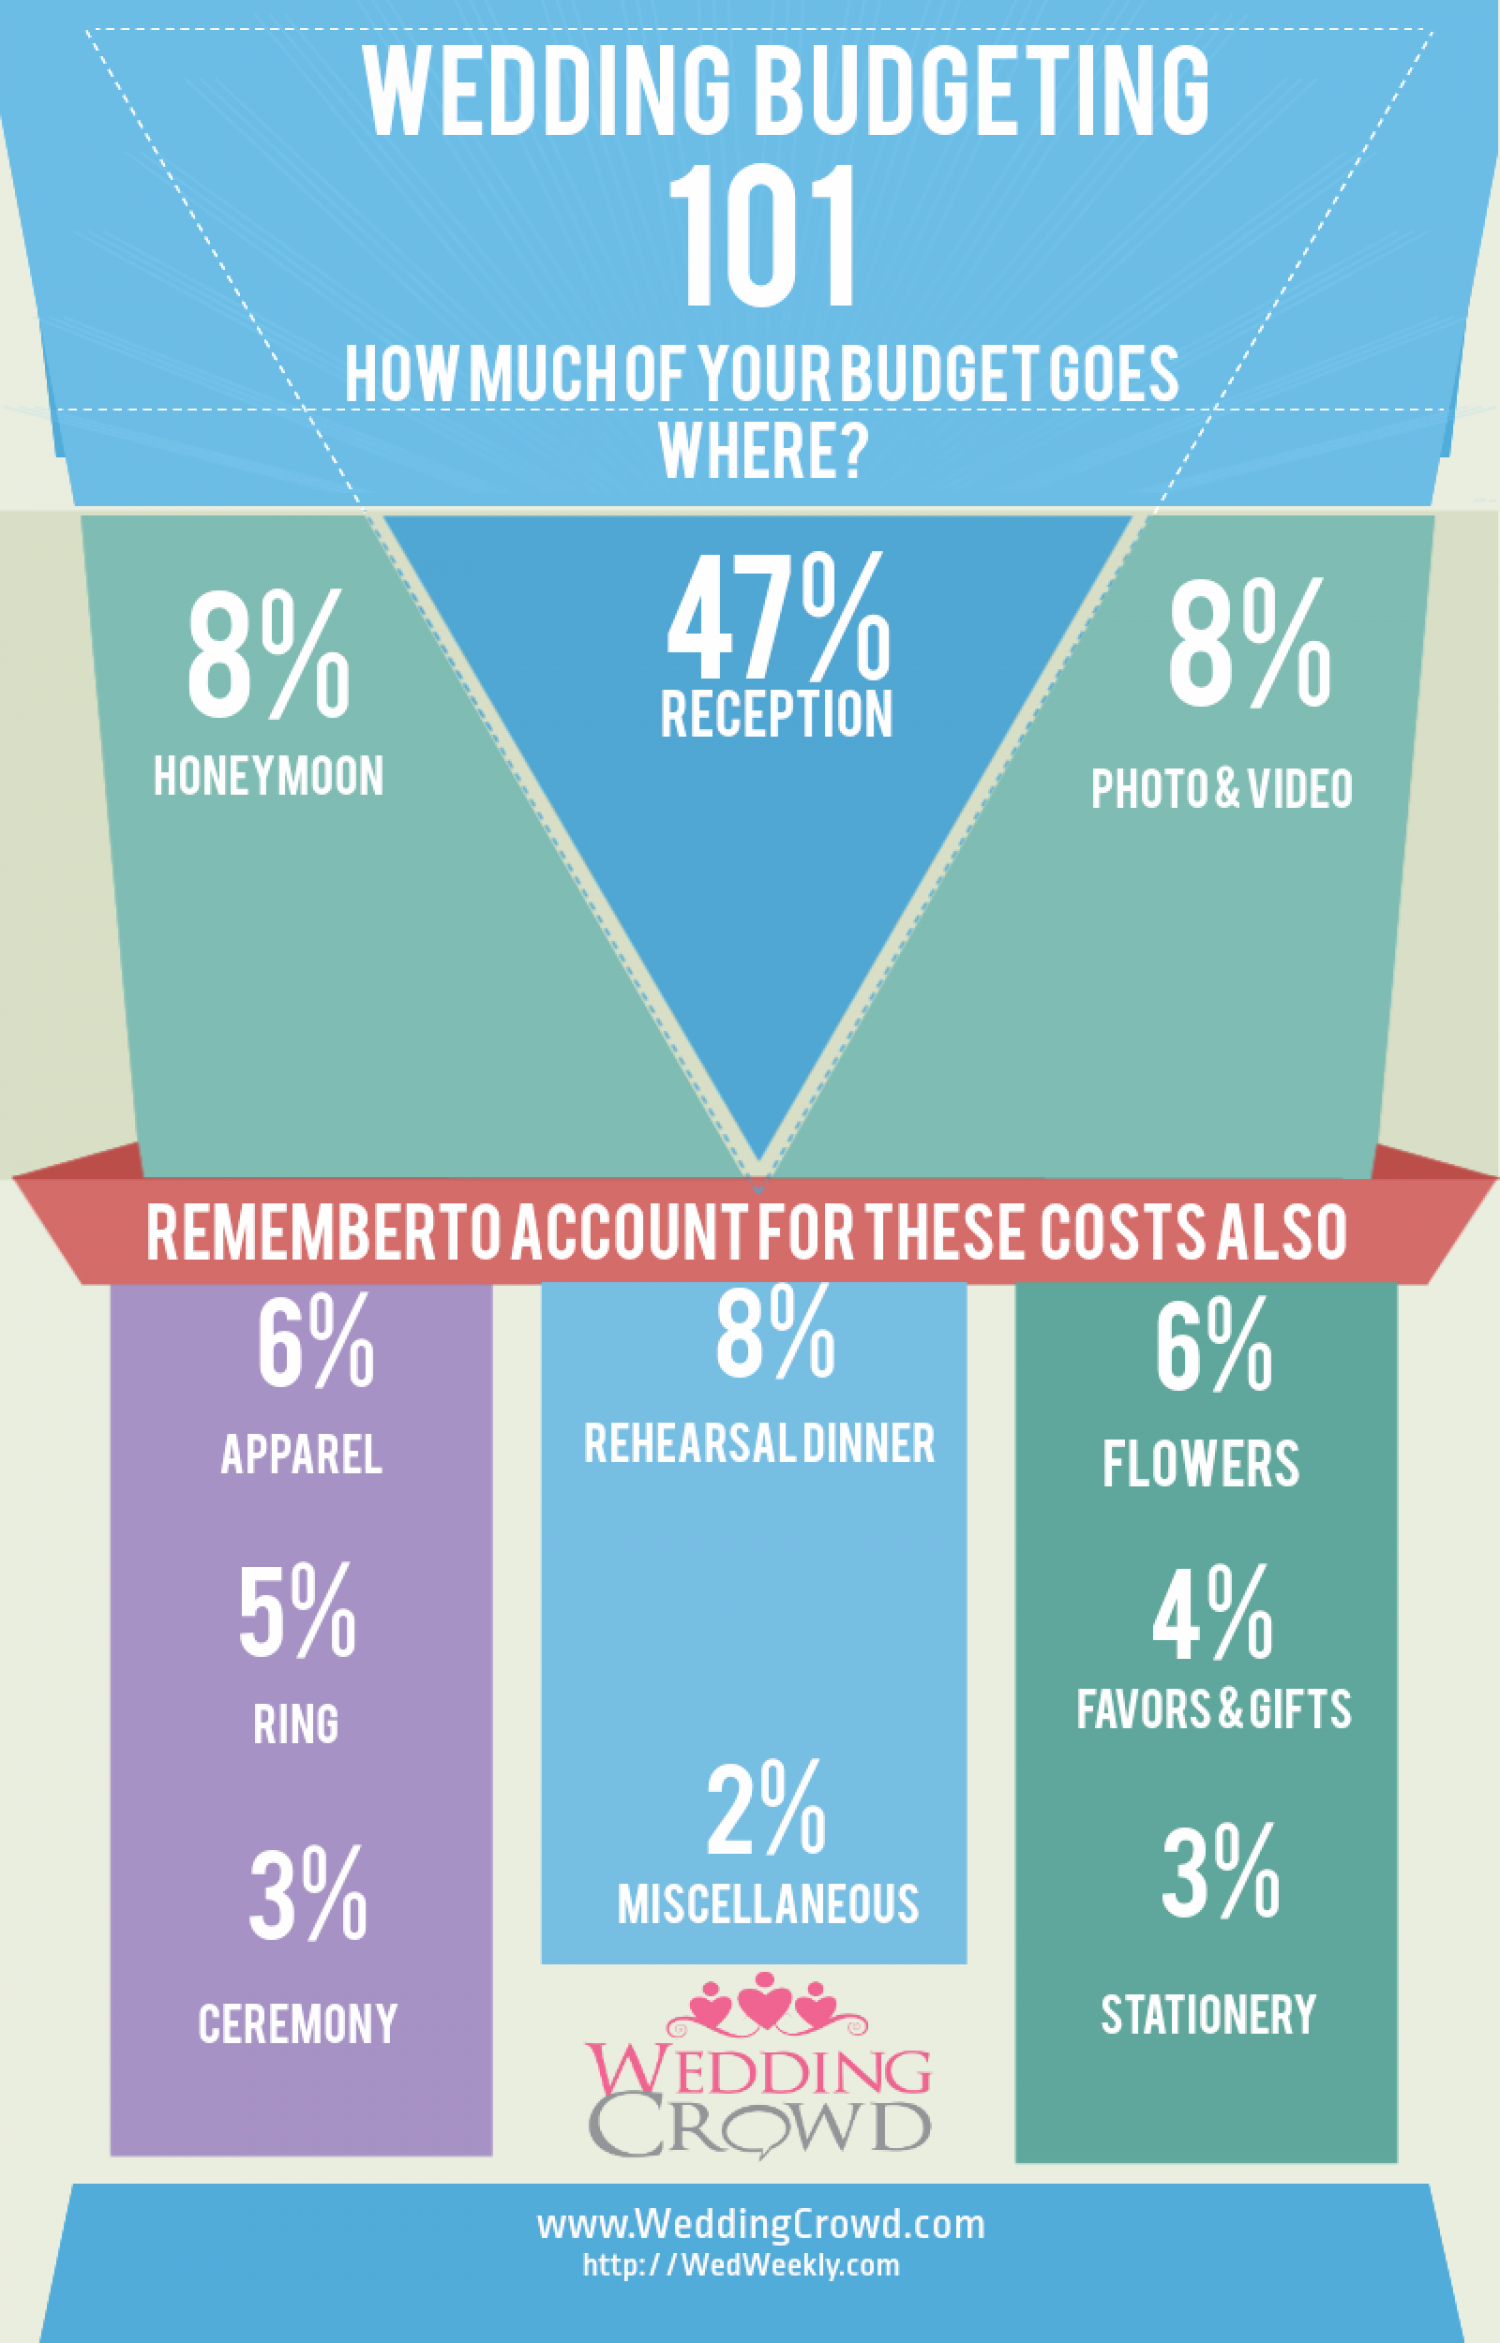 Wedding Budgeting 101 Infographic